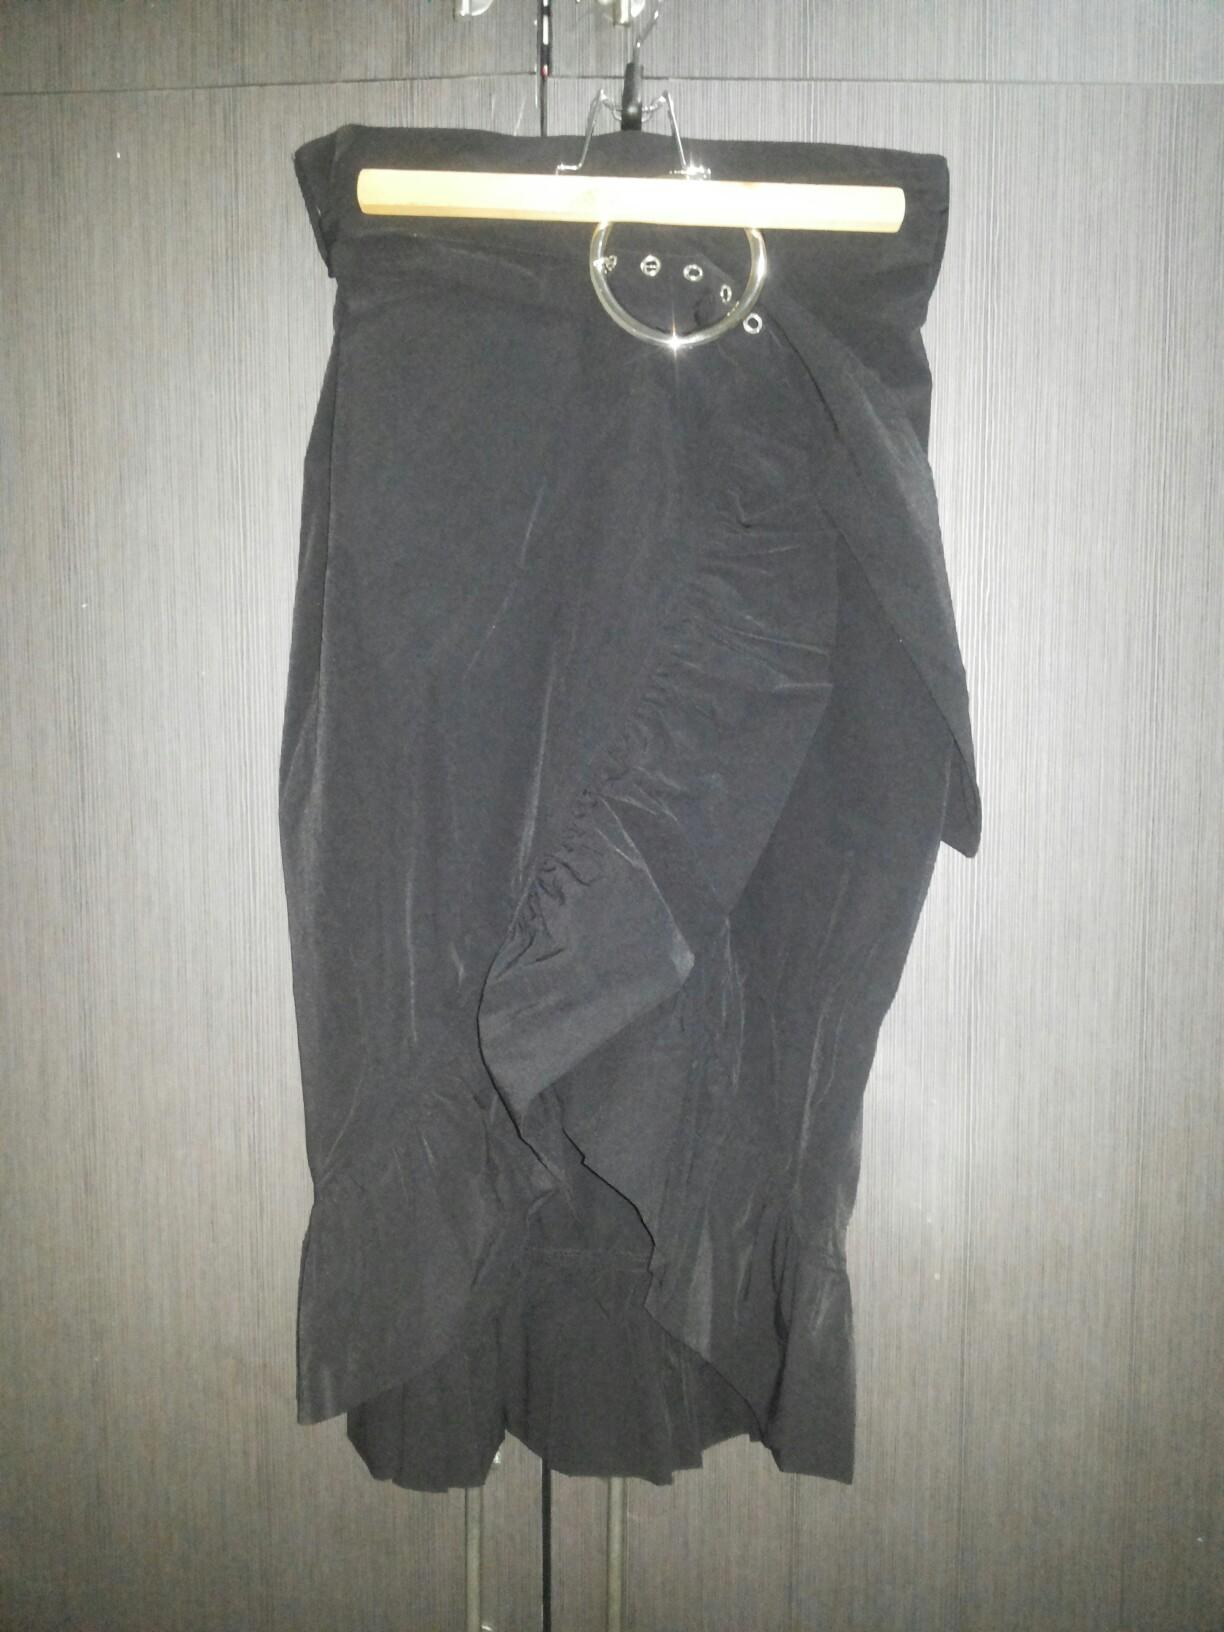 Pomelo Black Ruffle Skirt